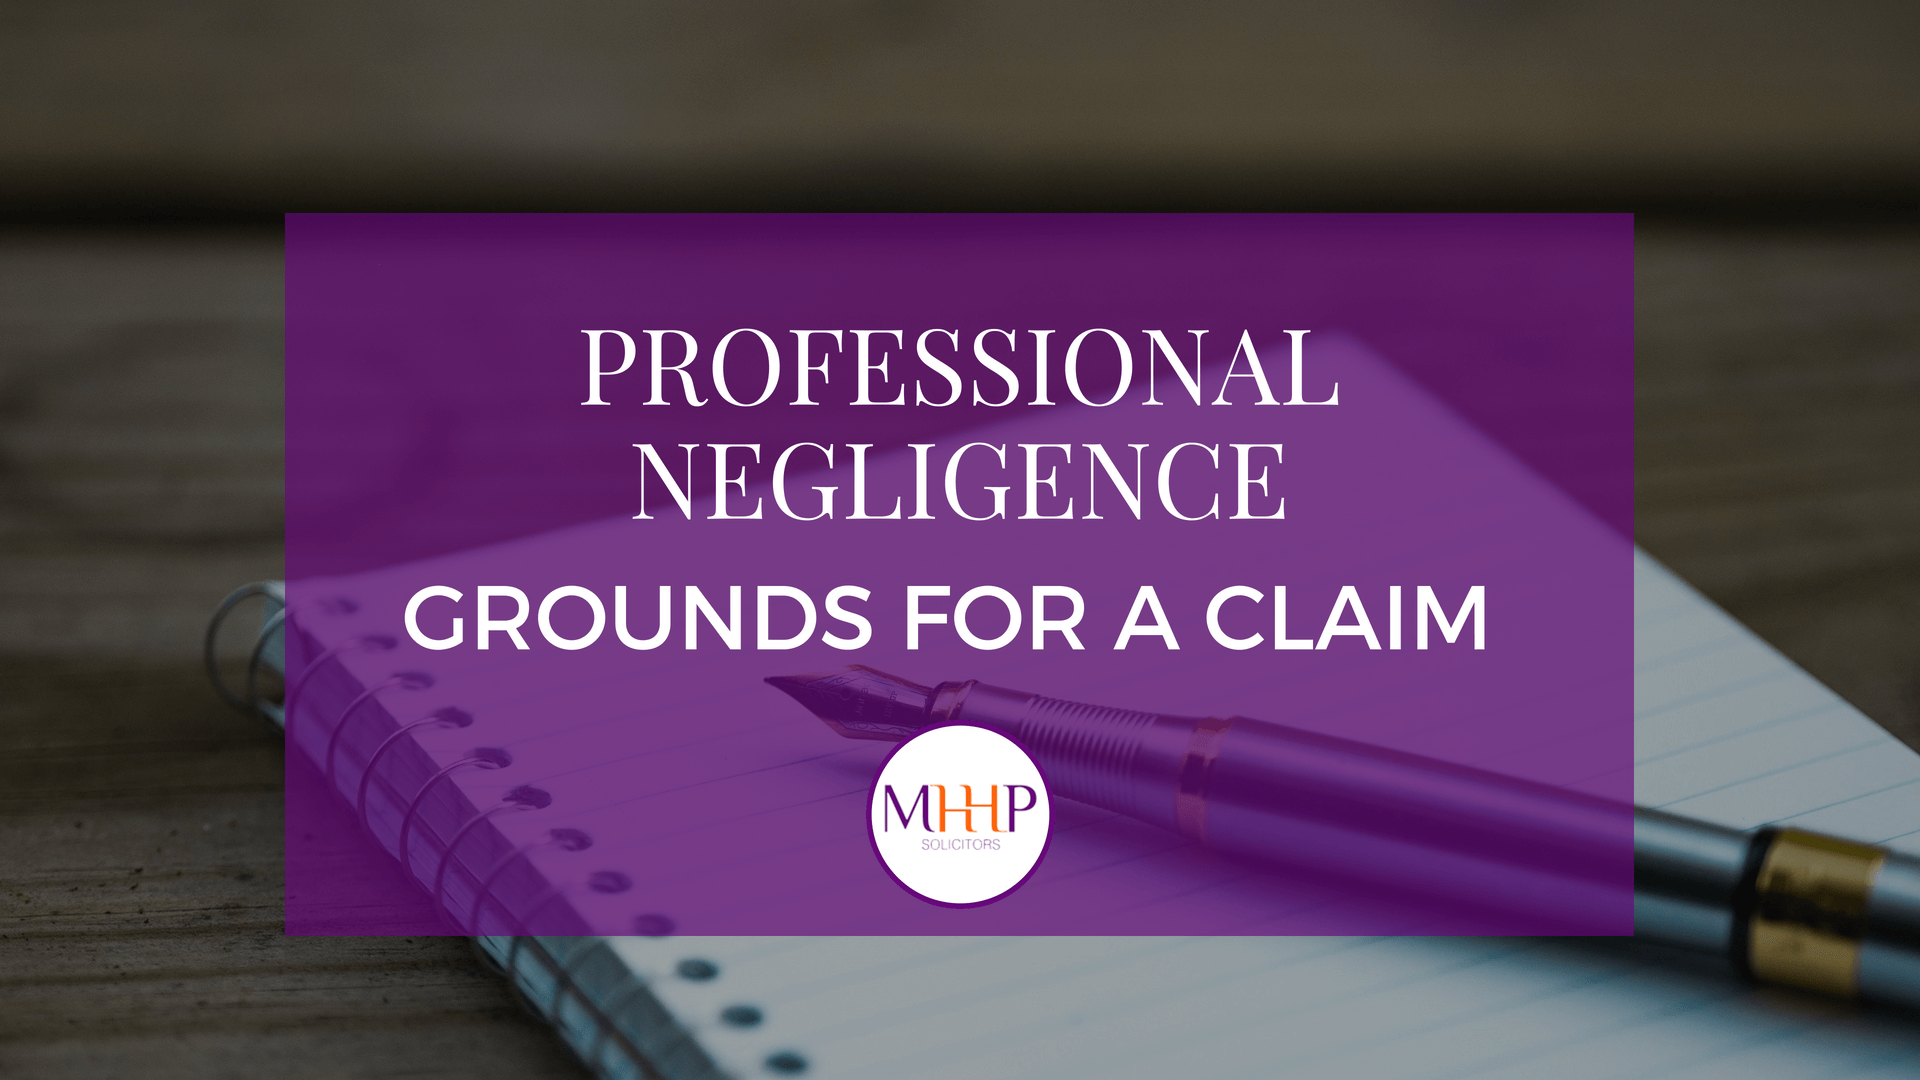 MHHP law - Grounds for a claim